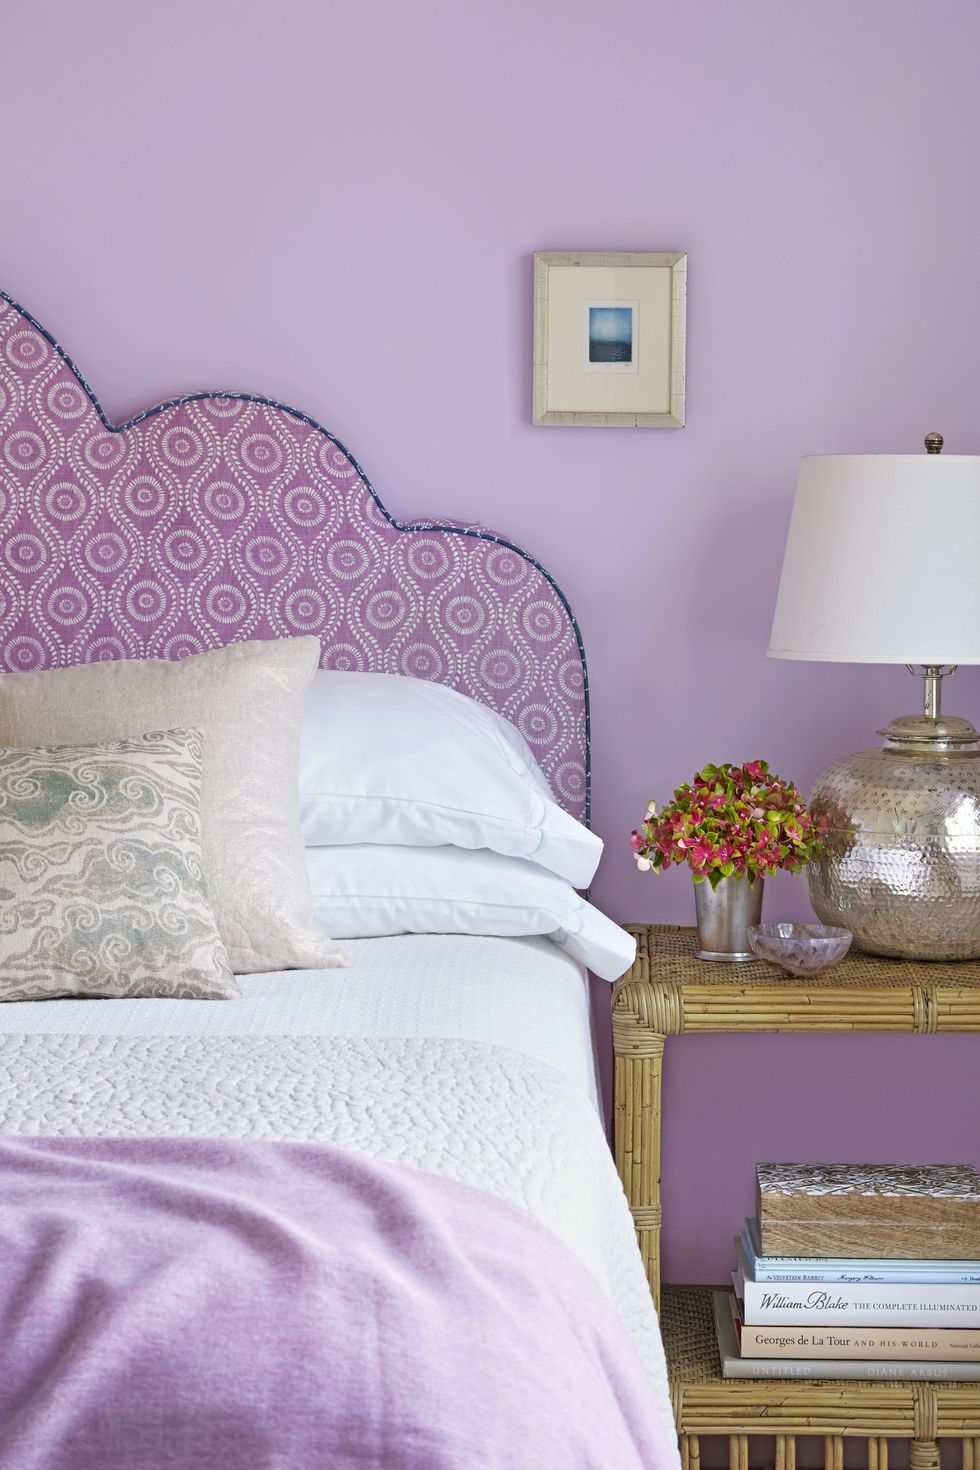 22 Of The Best Paint Colors For Small Spaces Schlafzimmer Farbschemata Raumfarbe Und Dekor